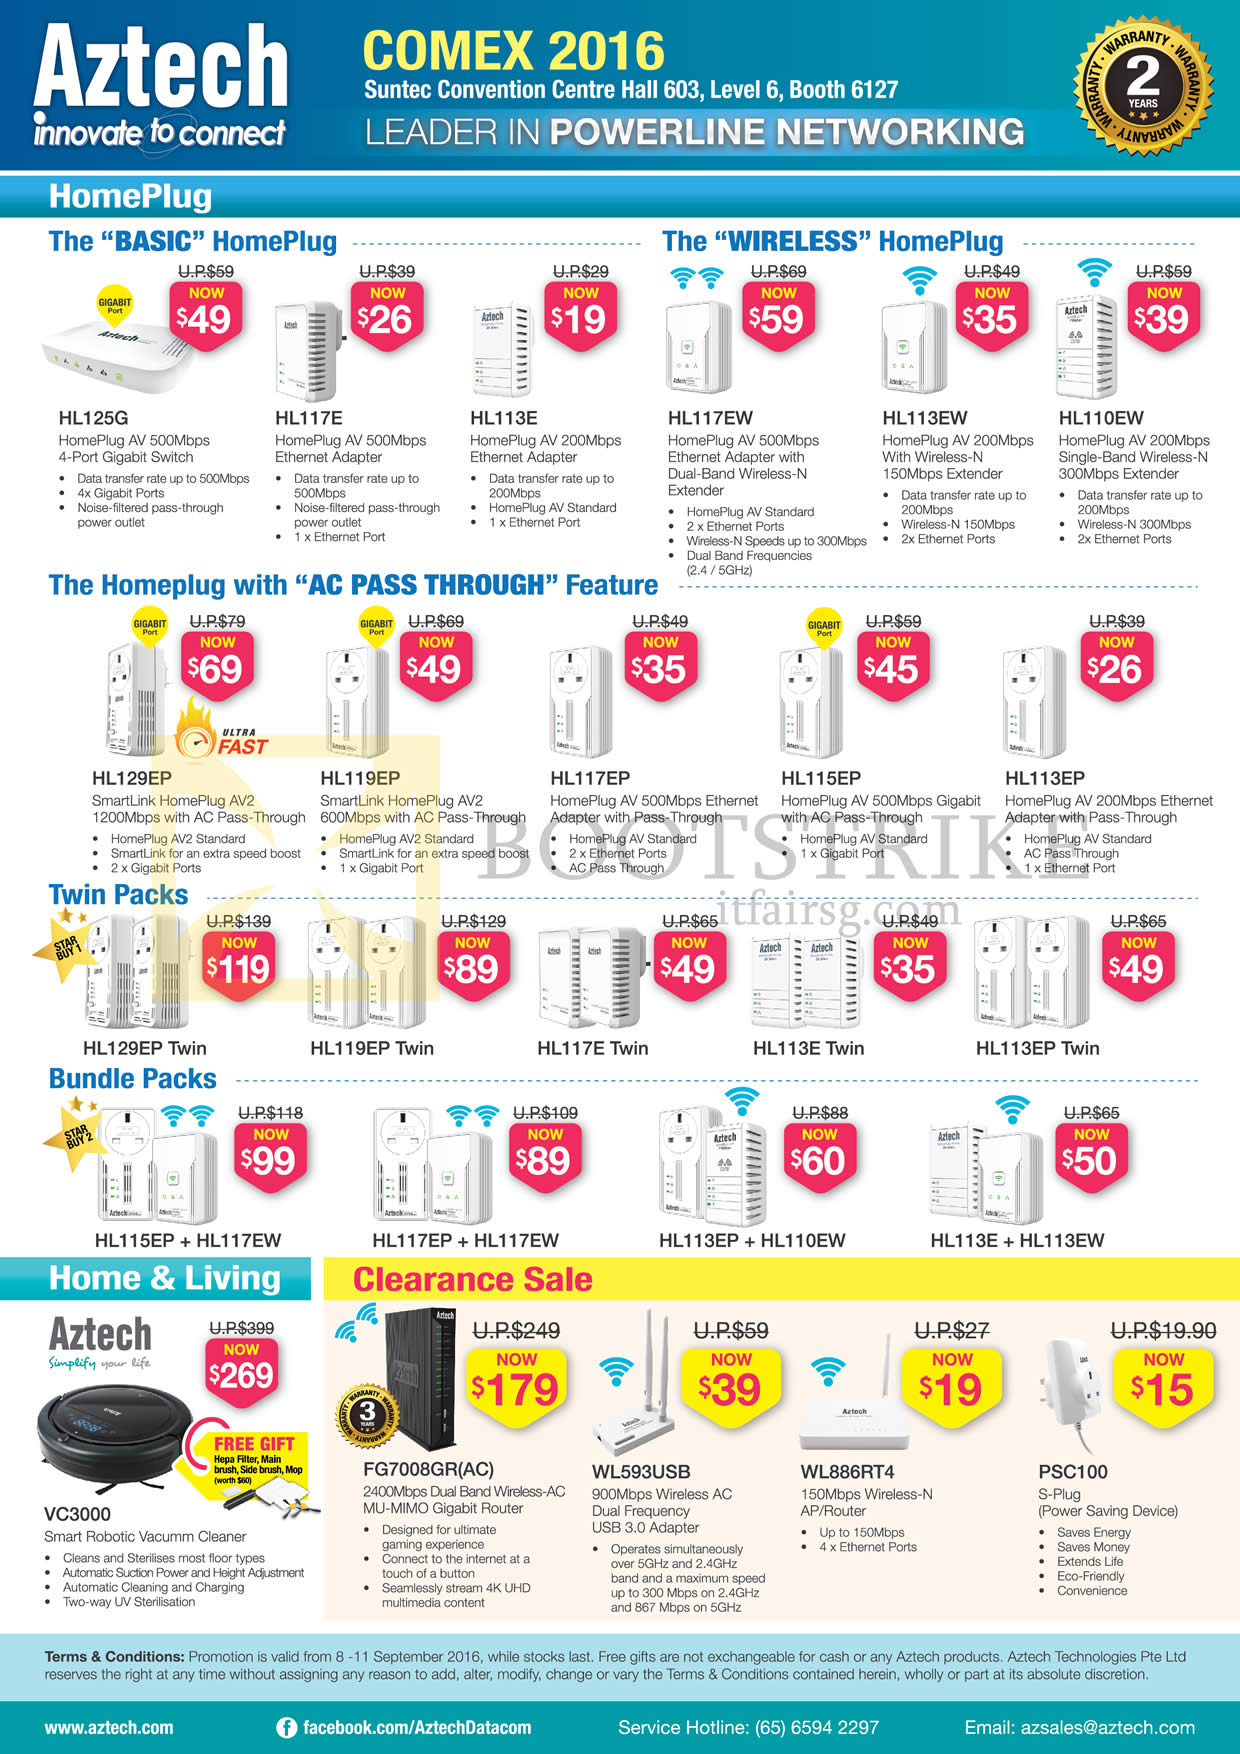 COMEX 2016 price list image brochure of Aztech Networking HomePlugs, Wireless, Twin Packs, Bundle Packs, VC3000 Robot Vacuum Cleaner, Router, USB Adapter